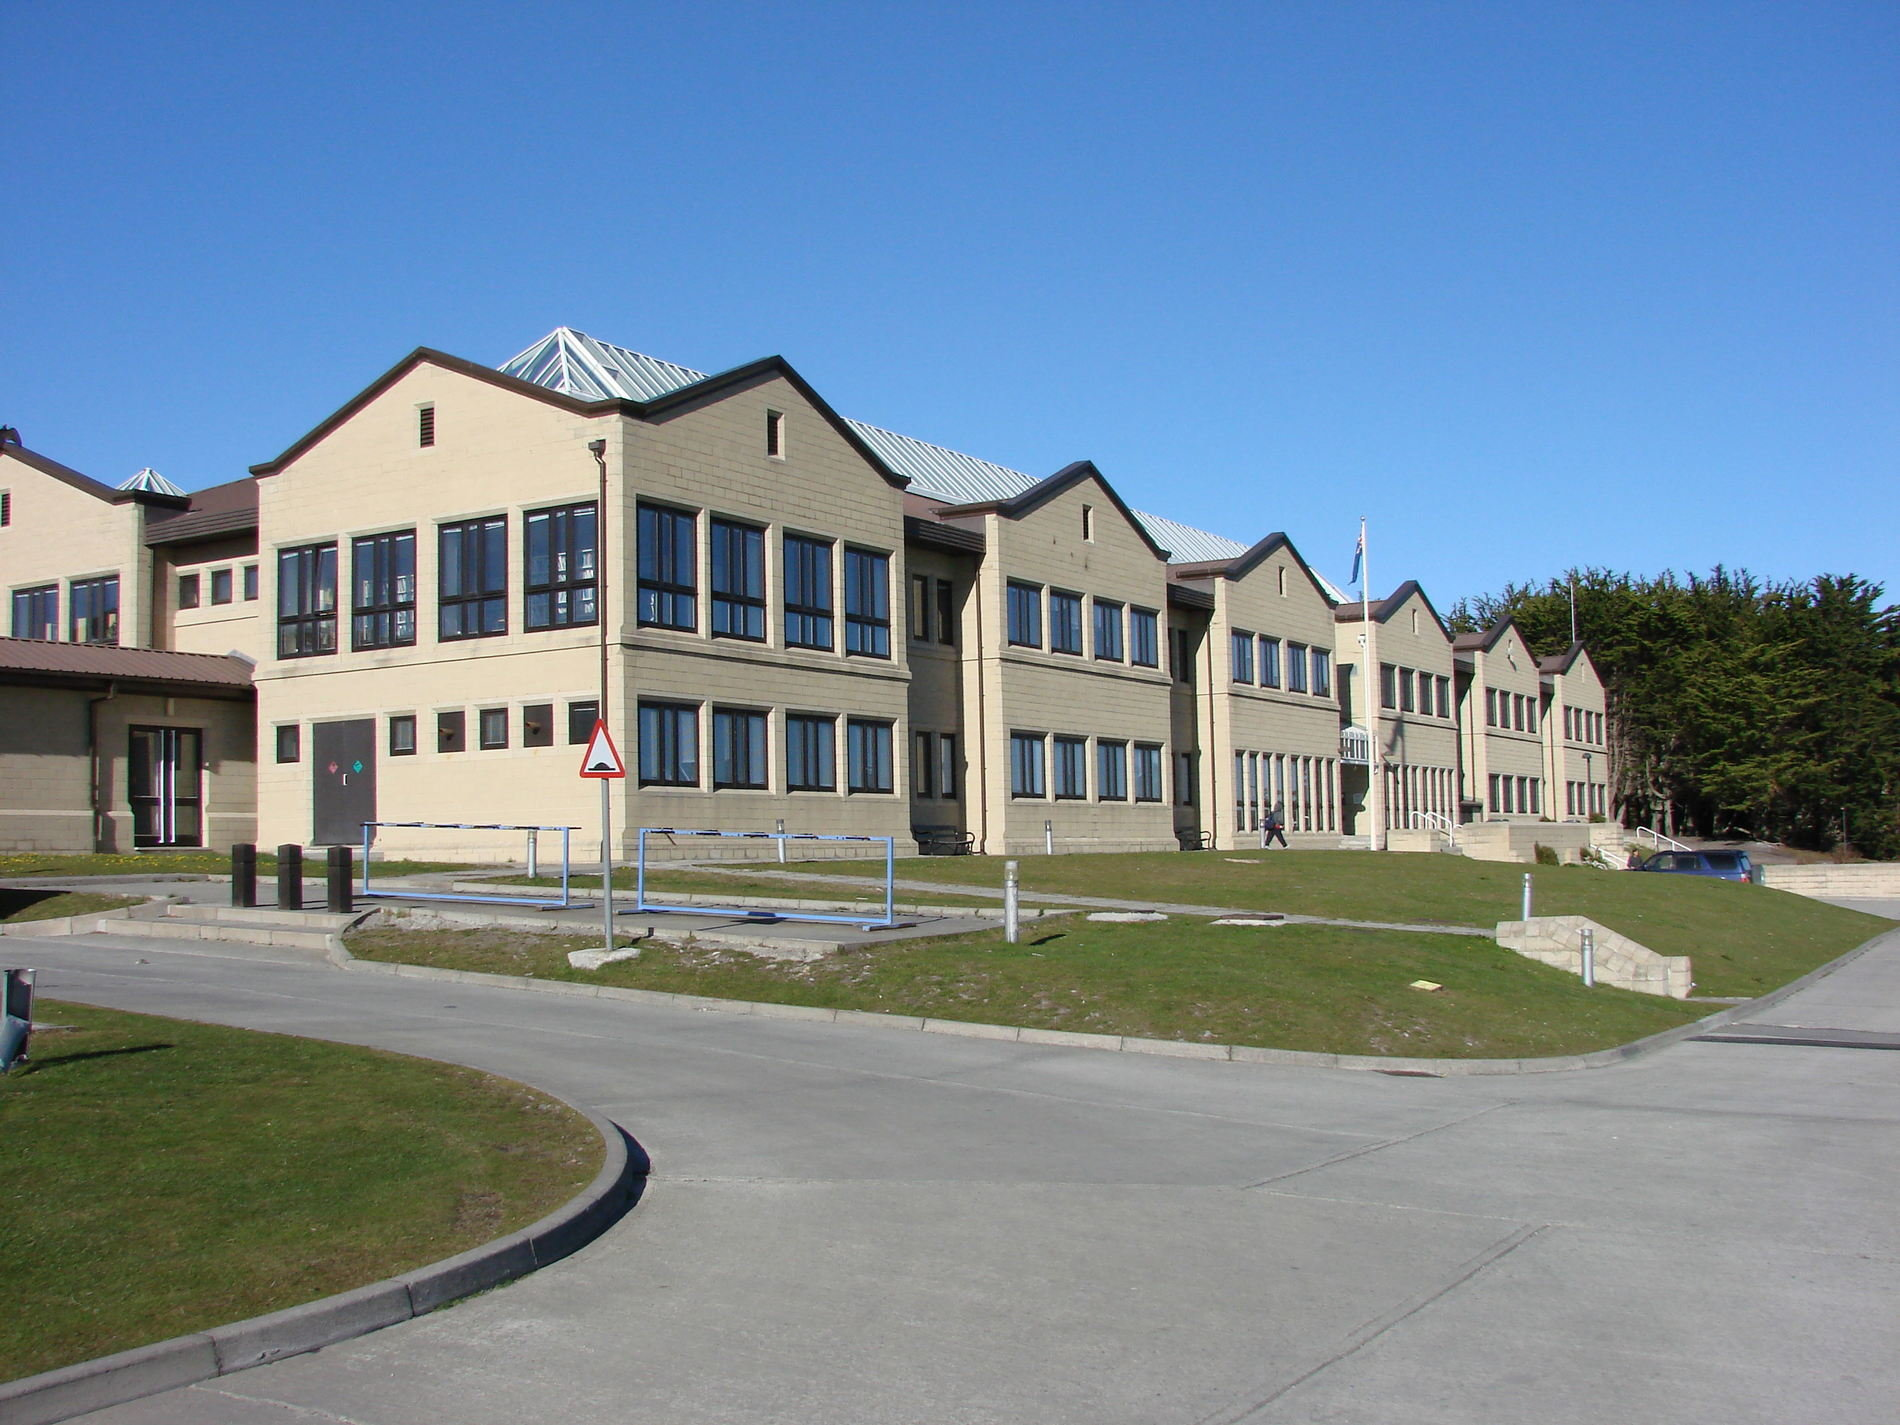 Falkland Islands Community School